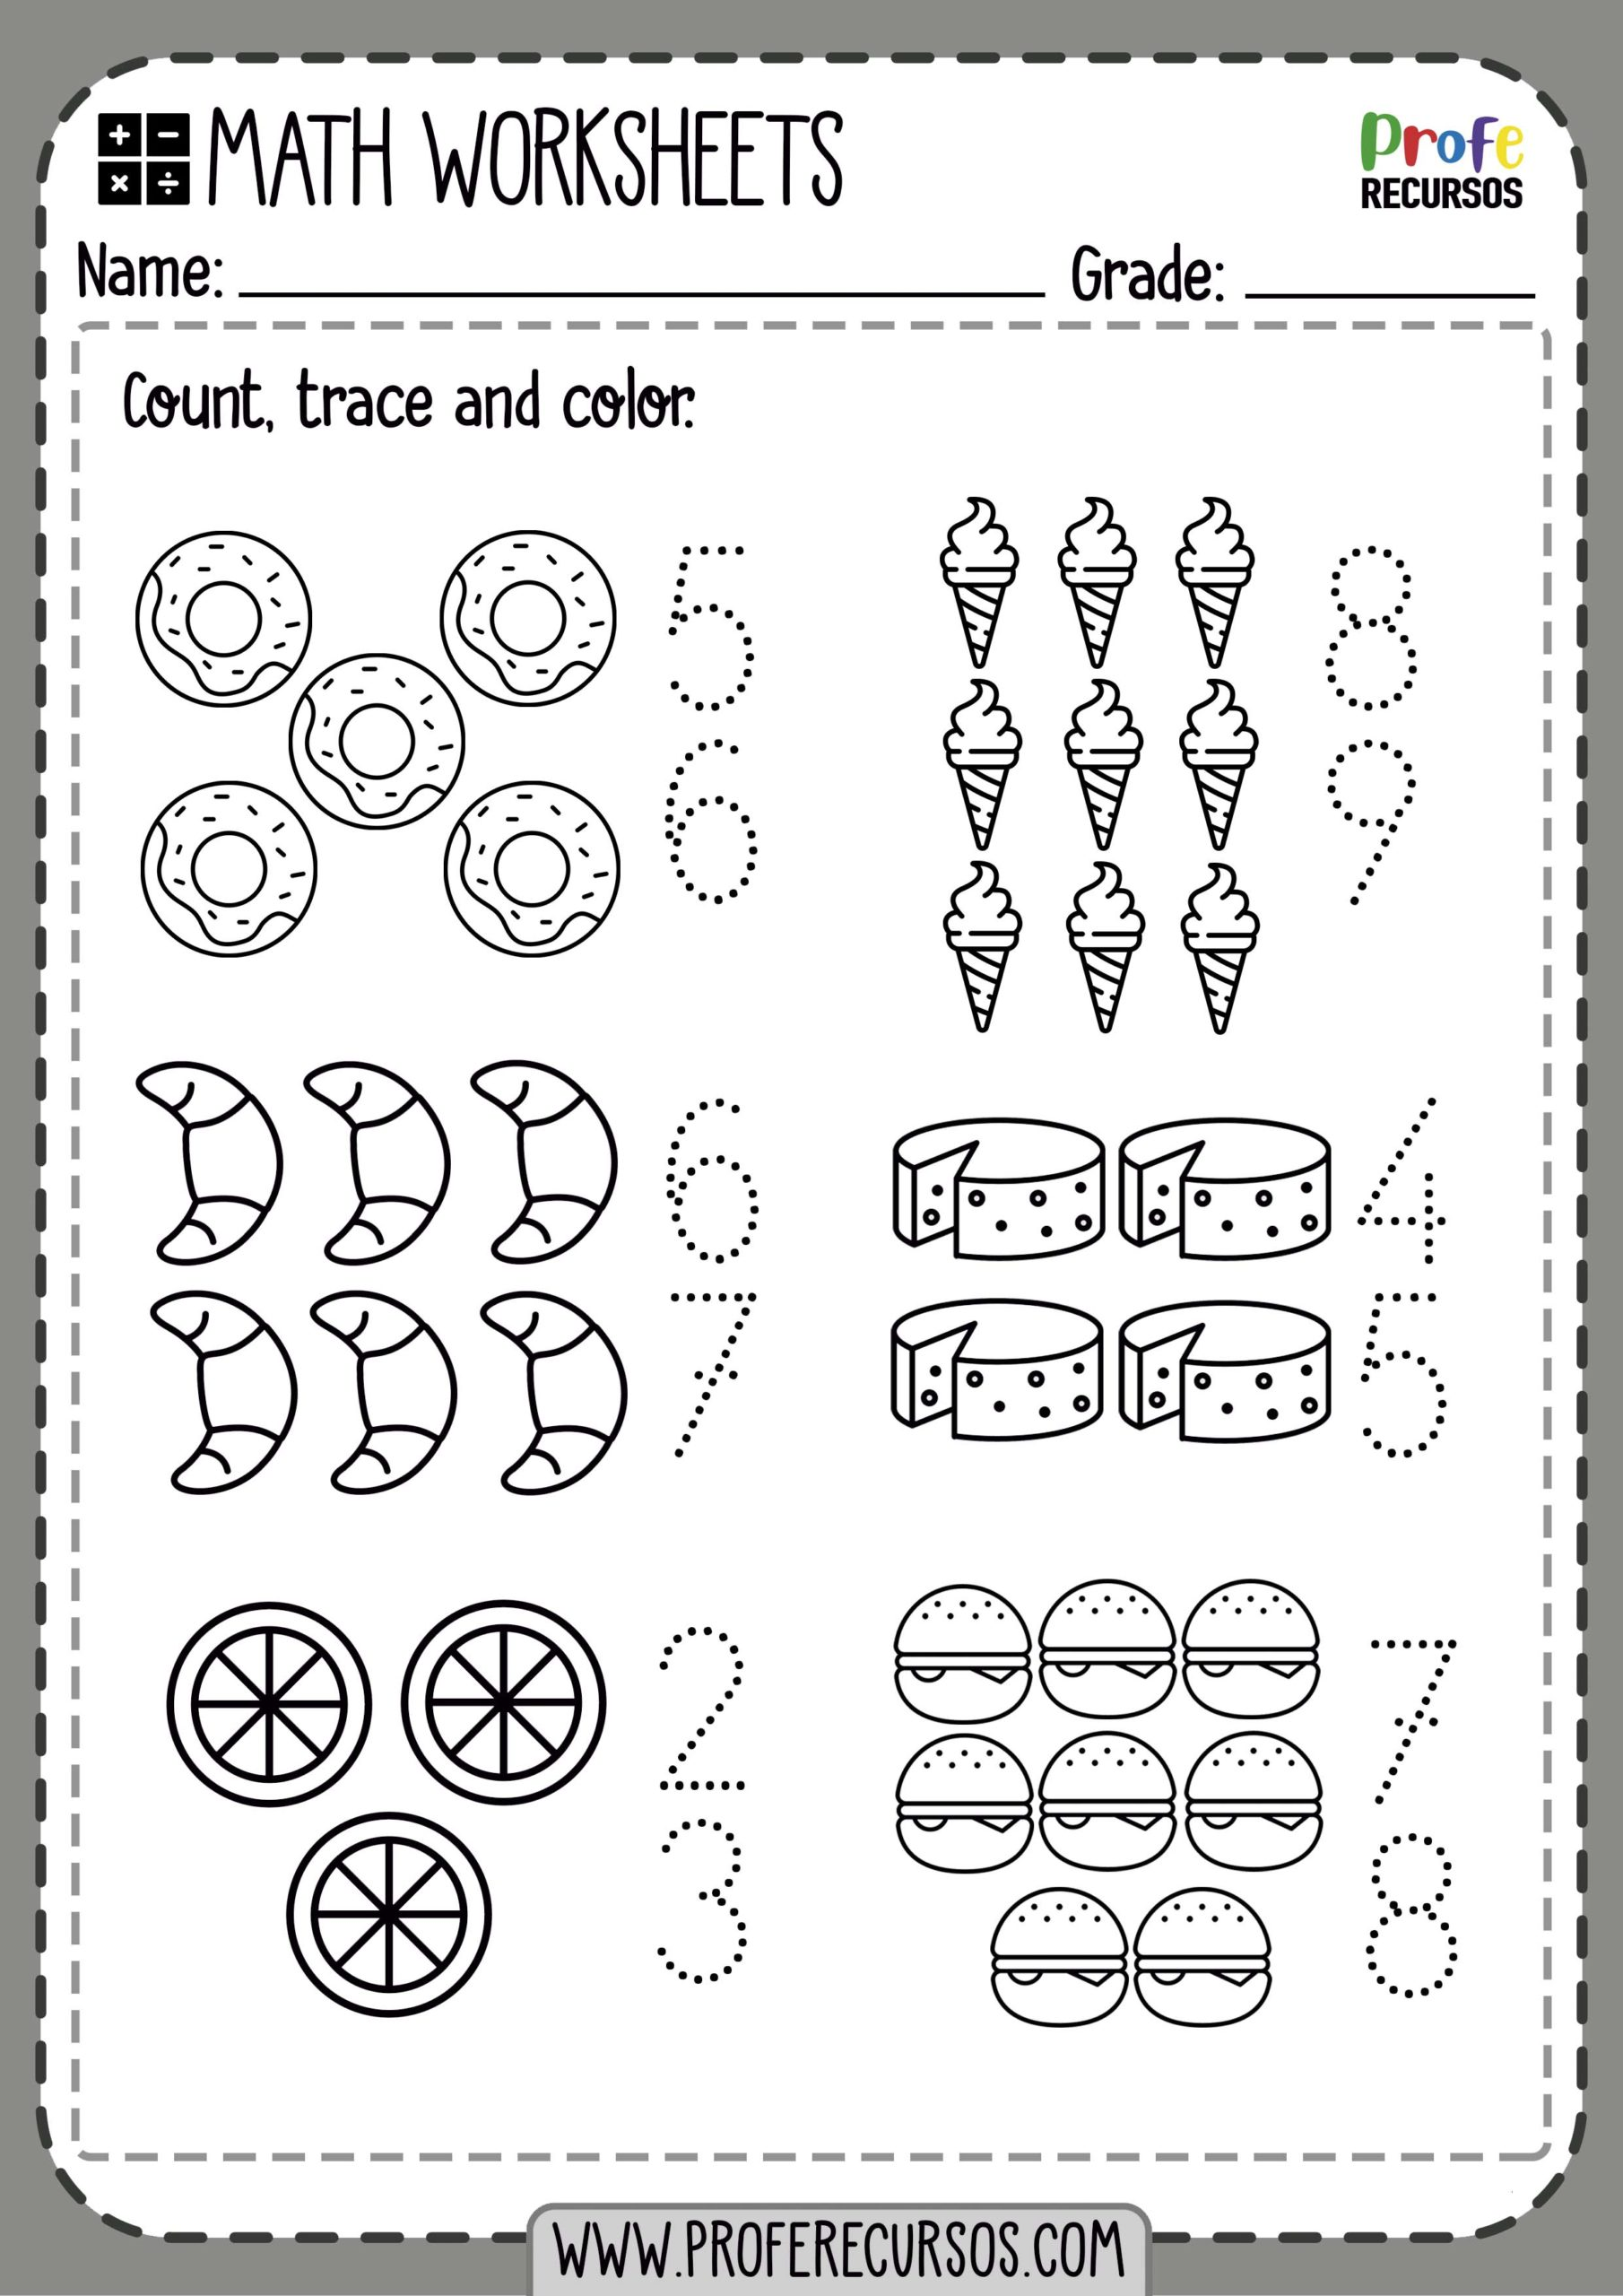 Free Printable Counting Worksheets For Kindergarten